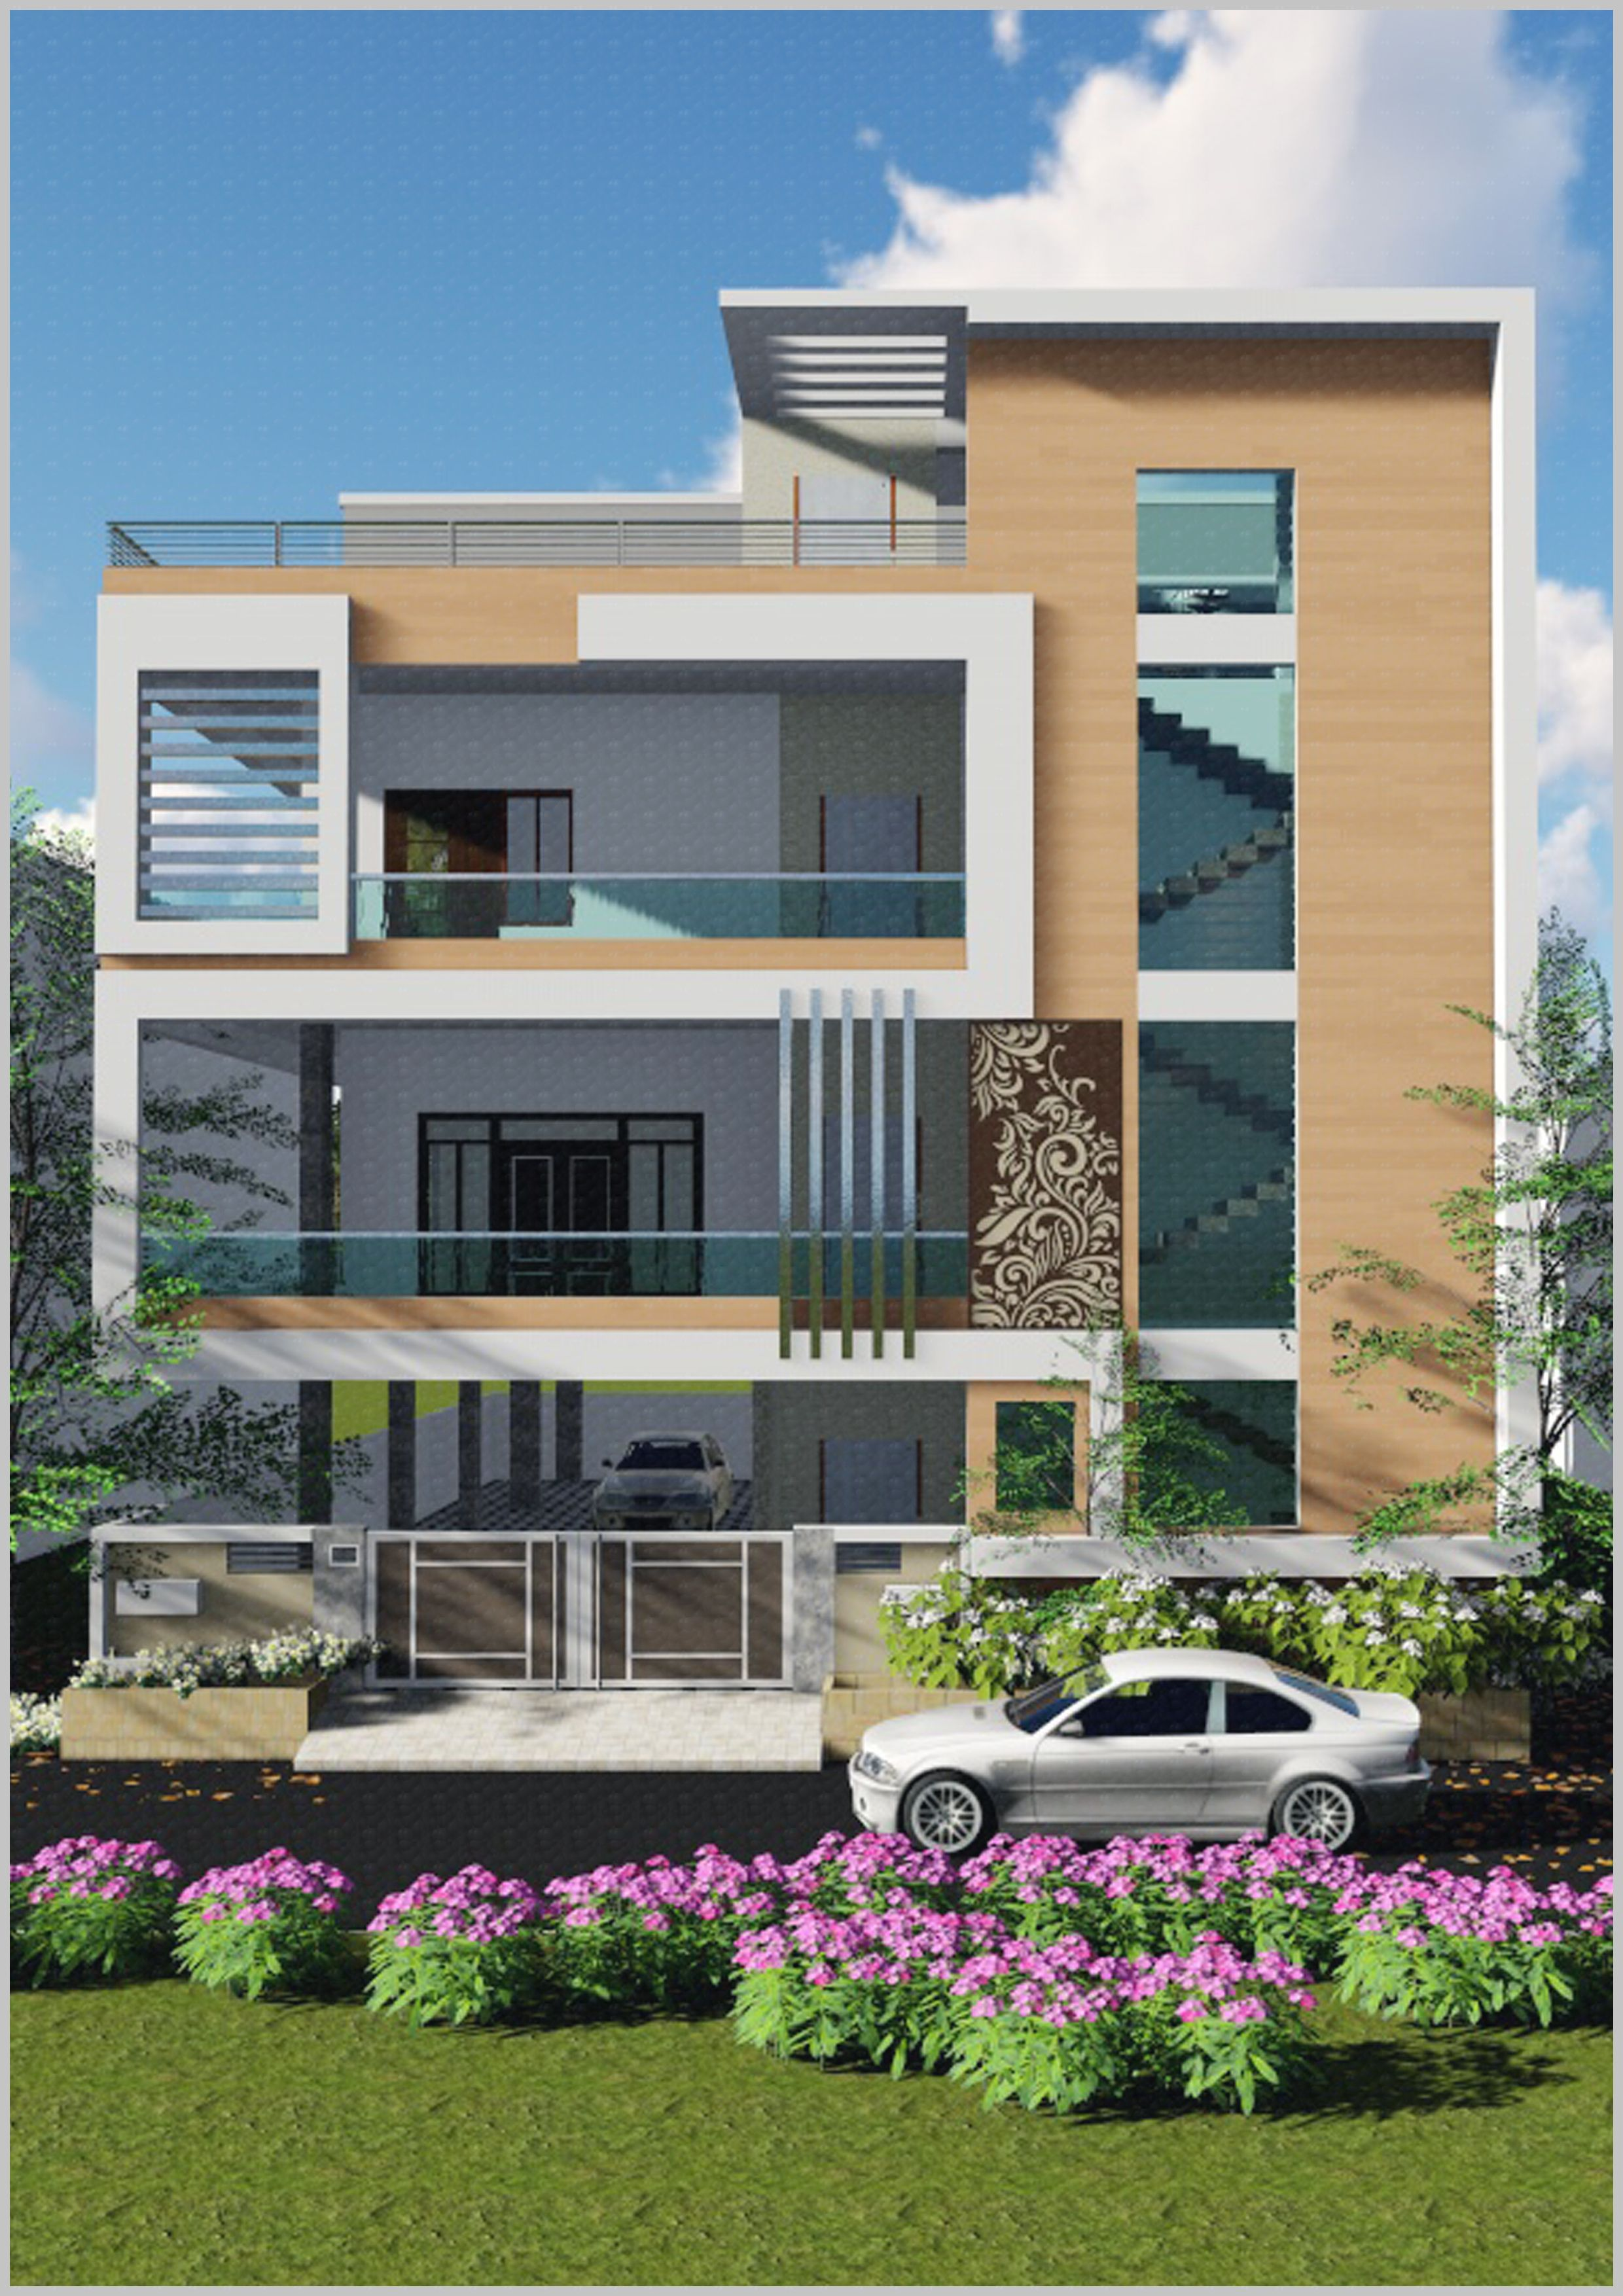 3d Exterior House Designs: Pin By JASPREET SINGH On Exterior 3d In 2019